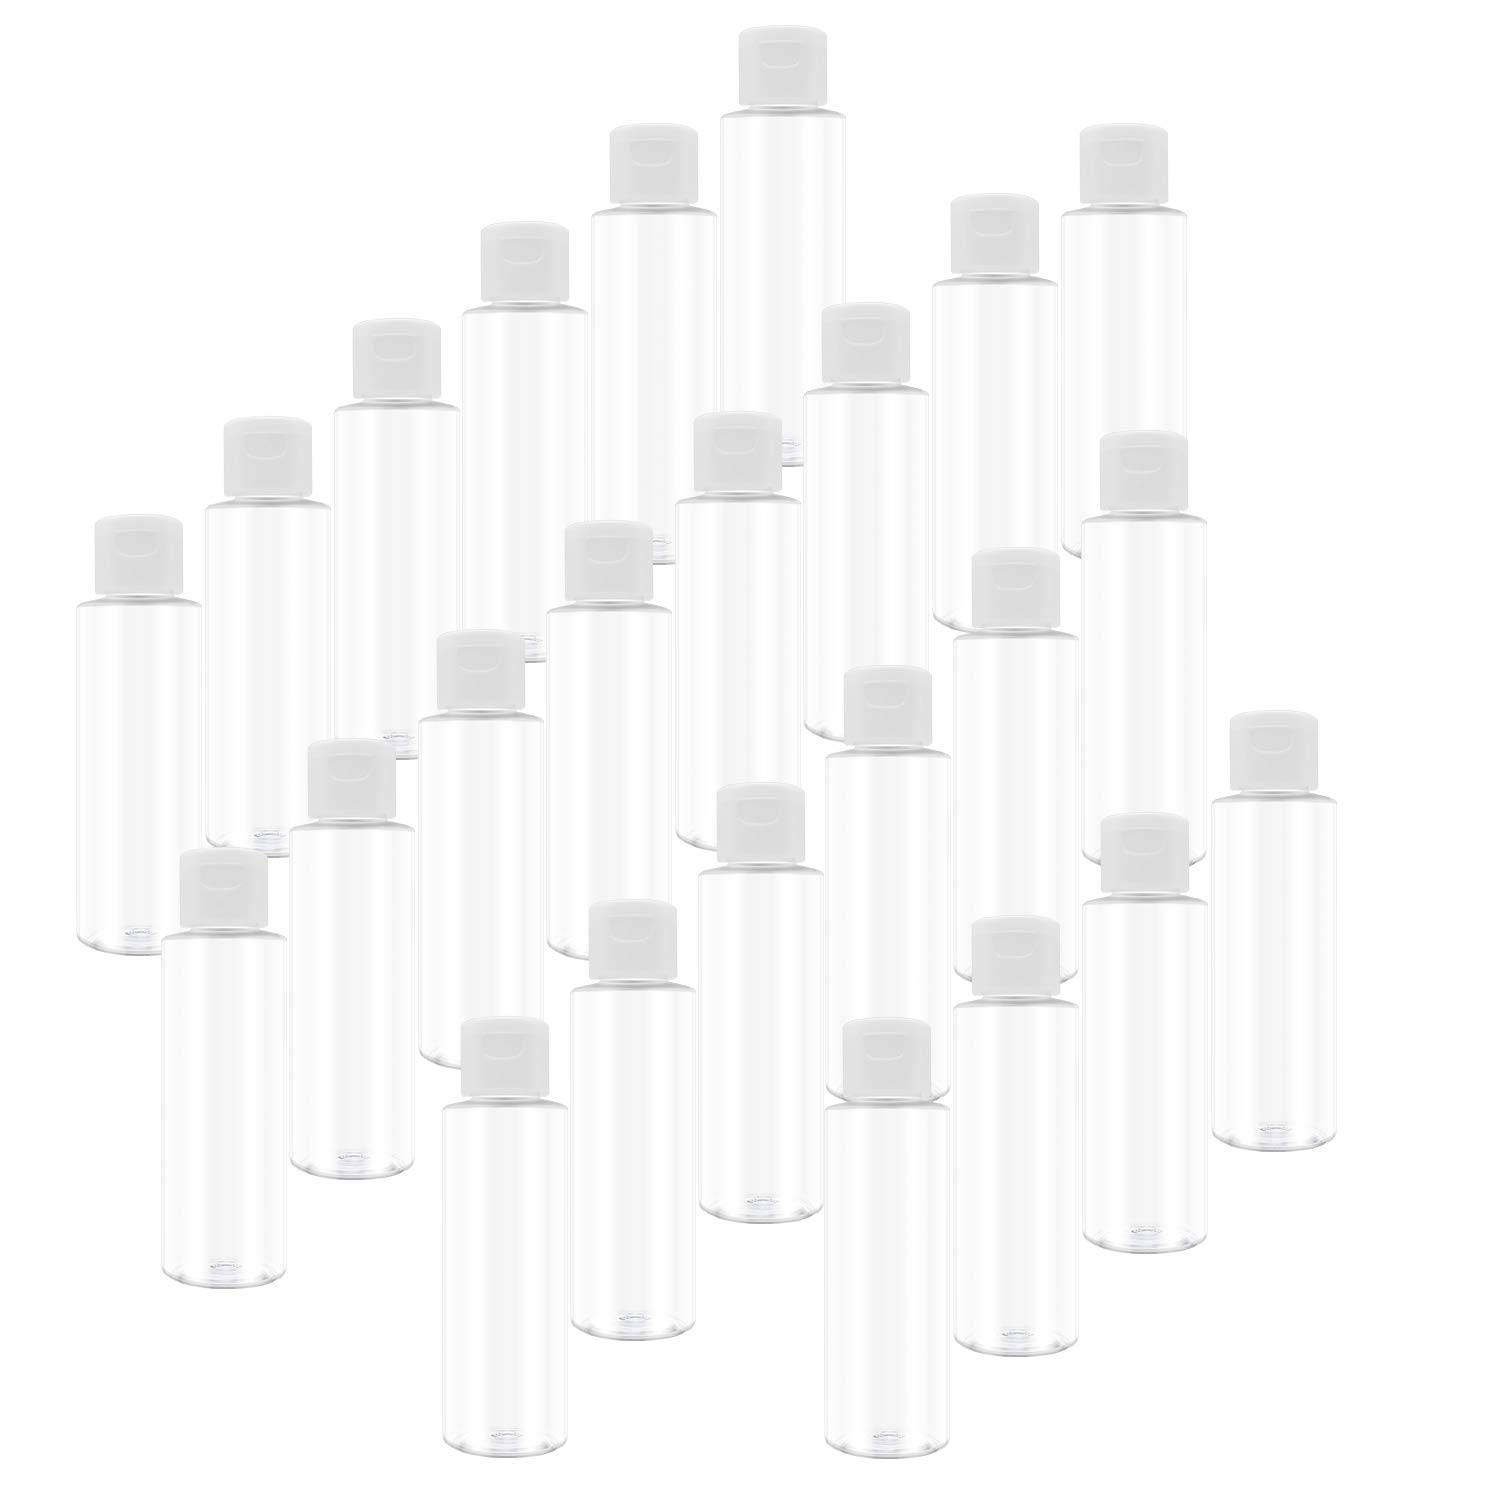 Trendbox 4oz Clear Plastic Empty Bottles with Flip Cap -BPA-free Travel Containers For Shampoo, Lotions, Liquid Body Soap and Massage Oils - Set of 24